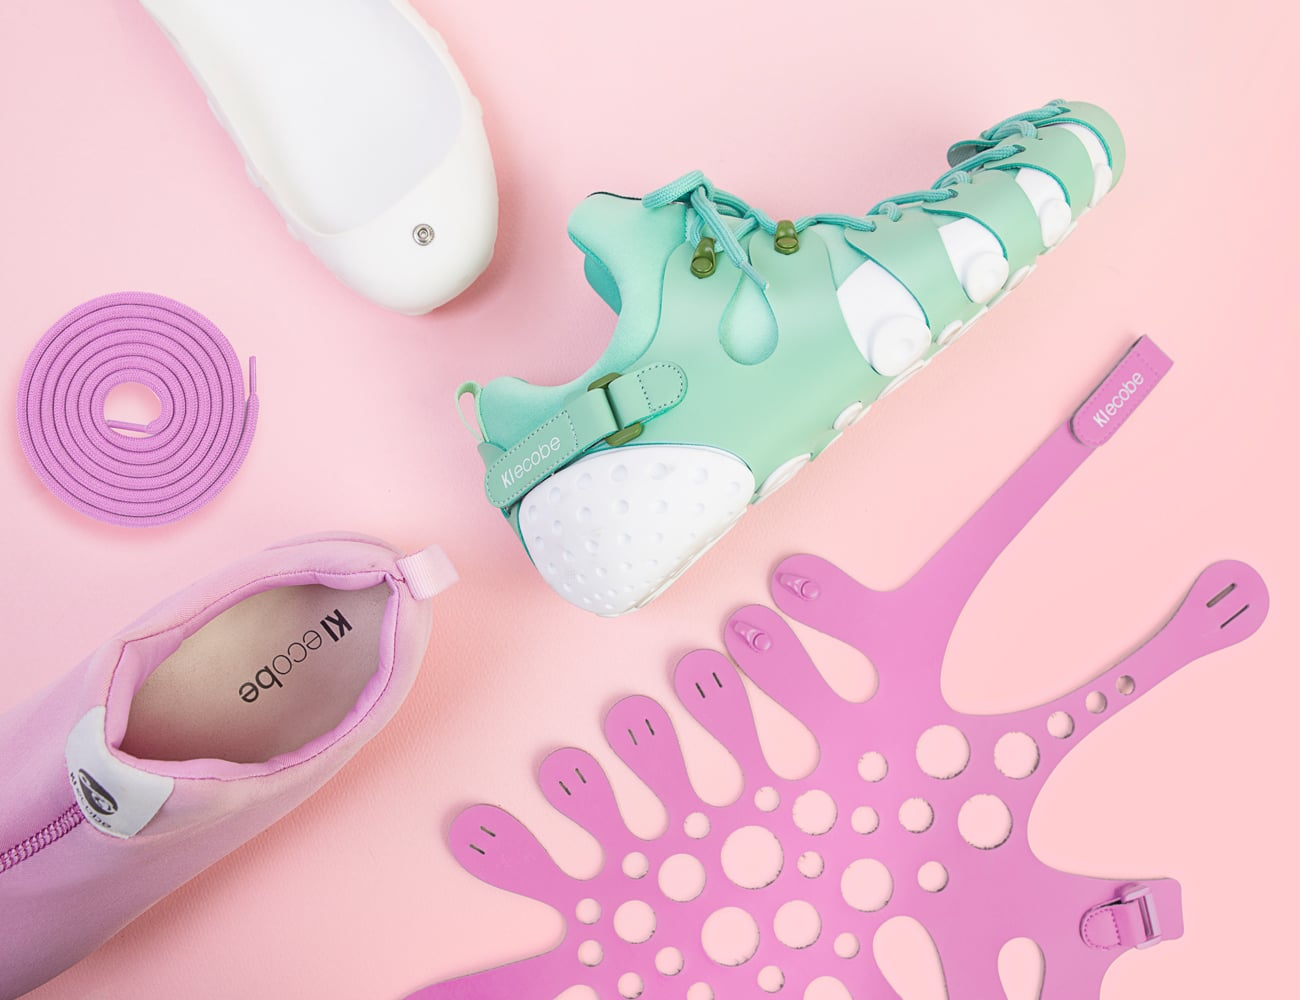 Ki ecobe Customizable Self-Assembled Footwear